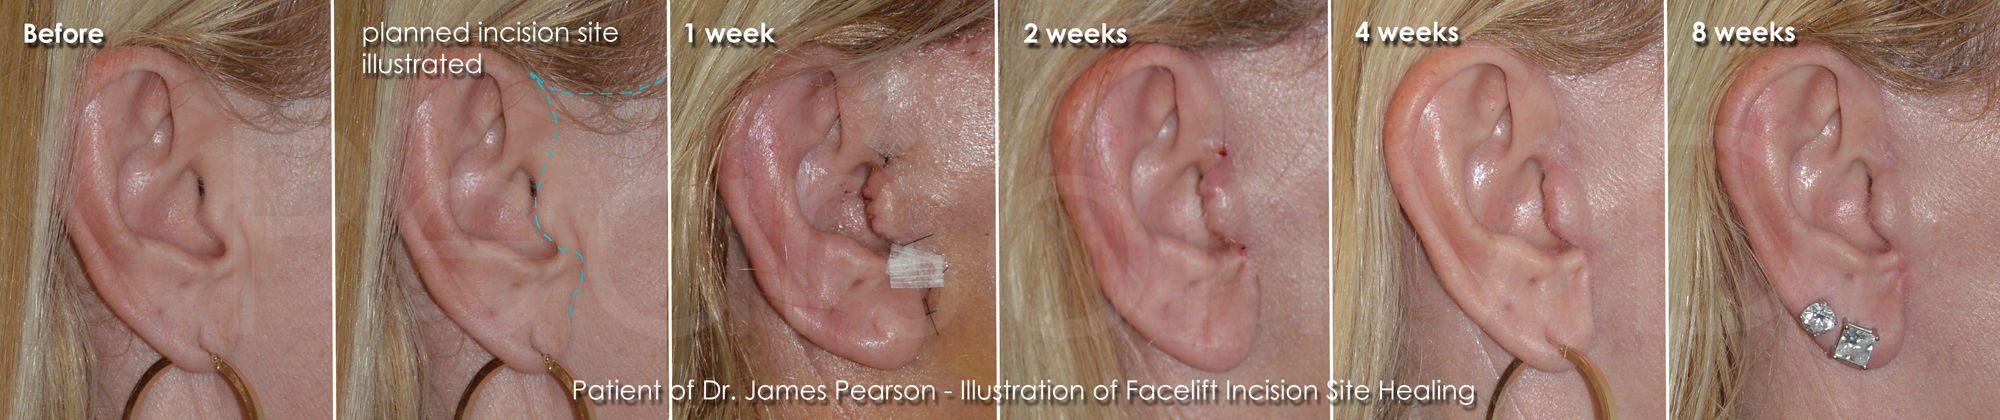 Pearson Facelift Incision